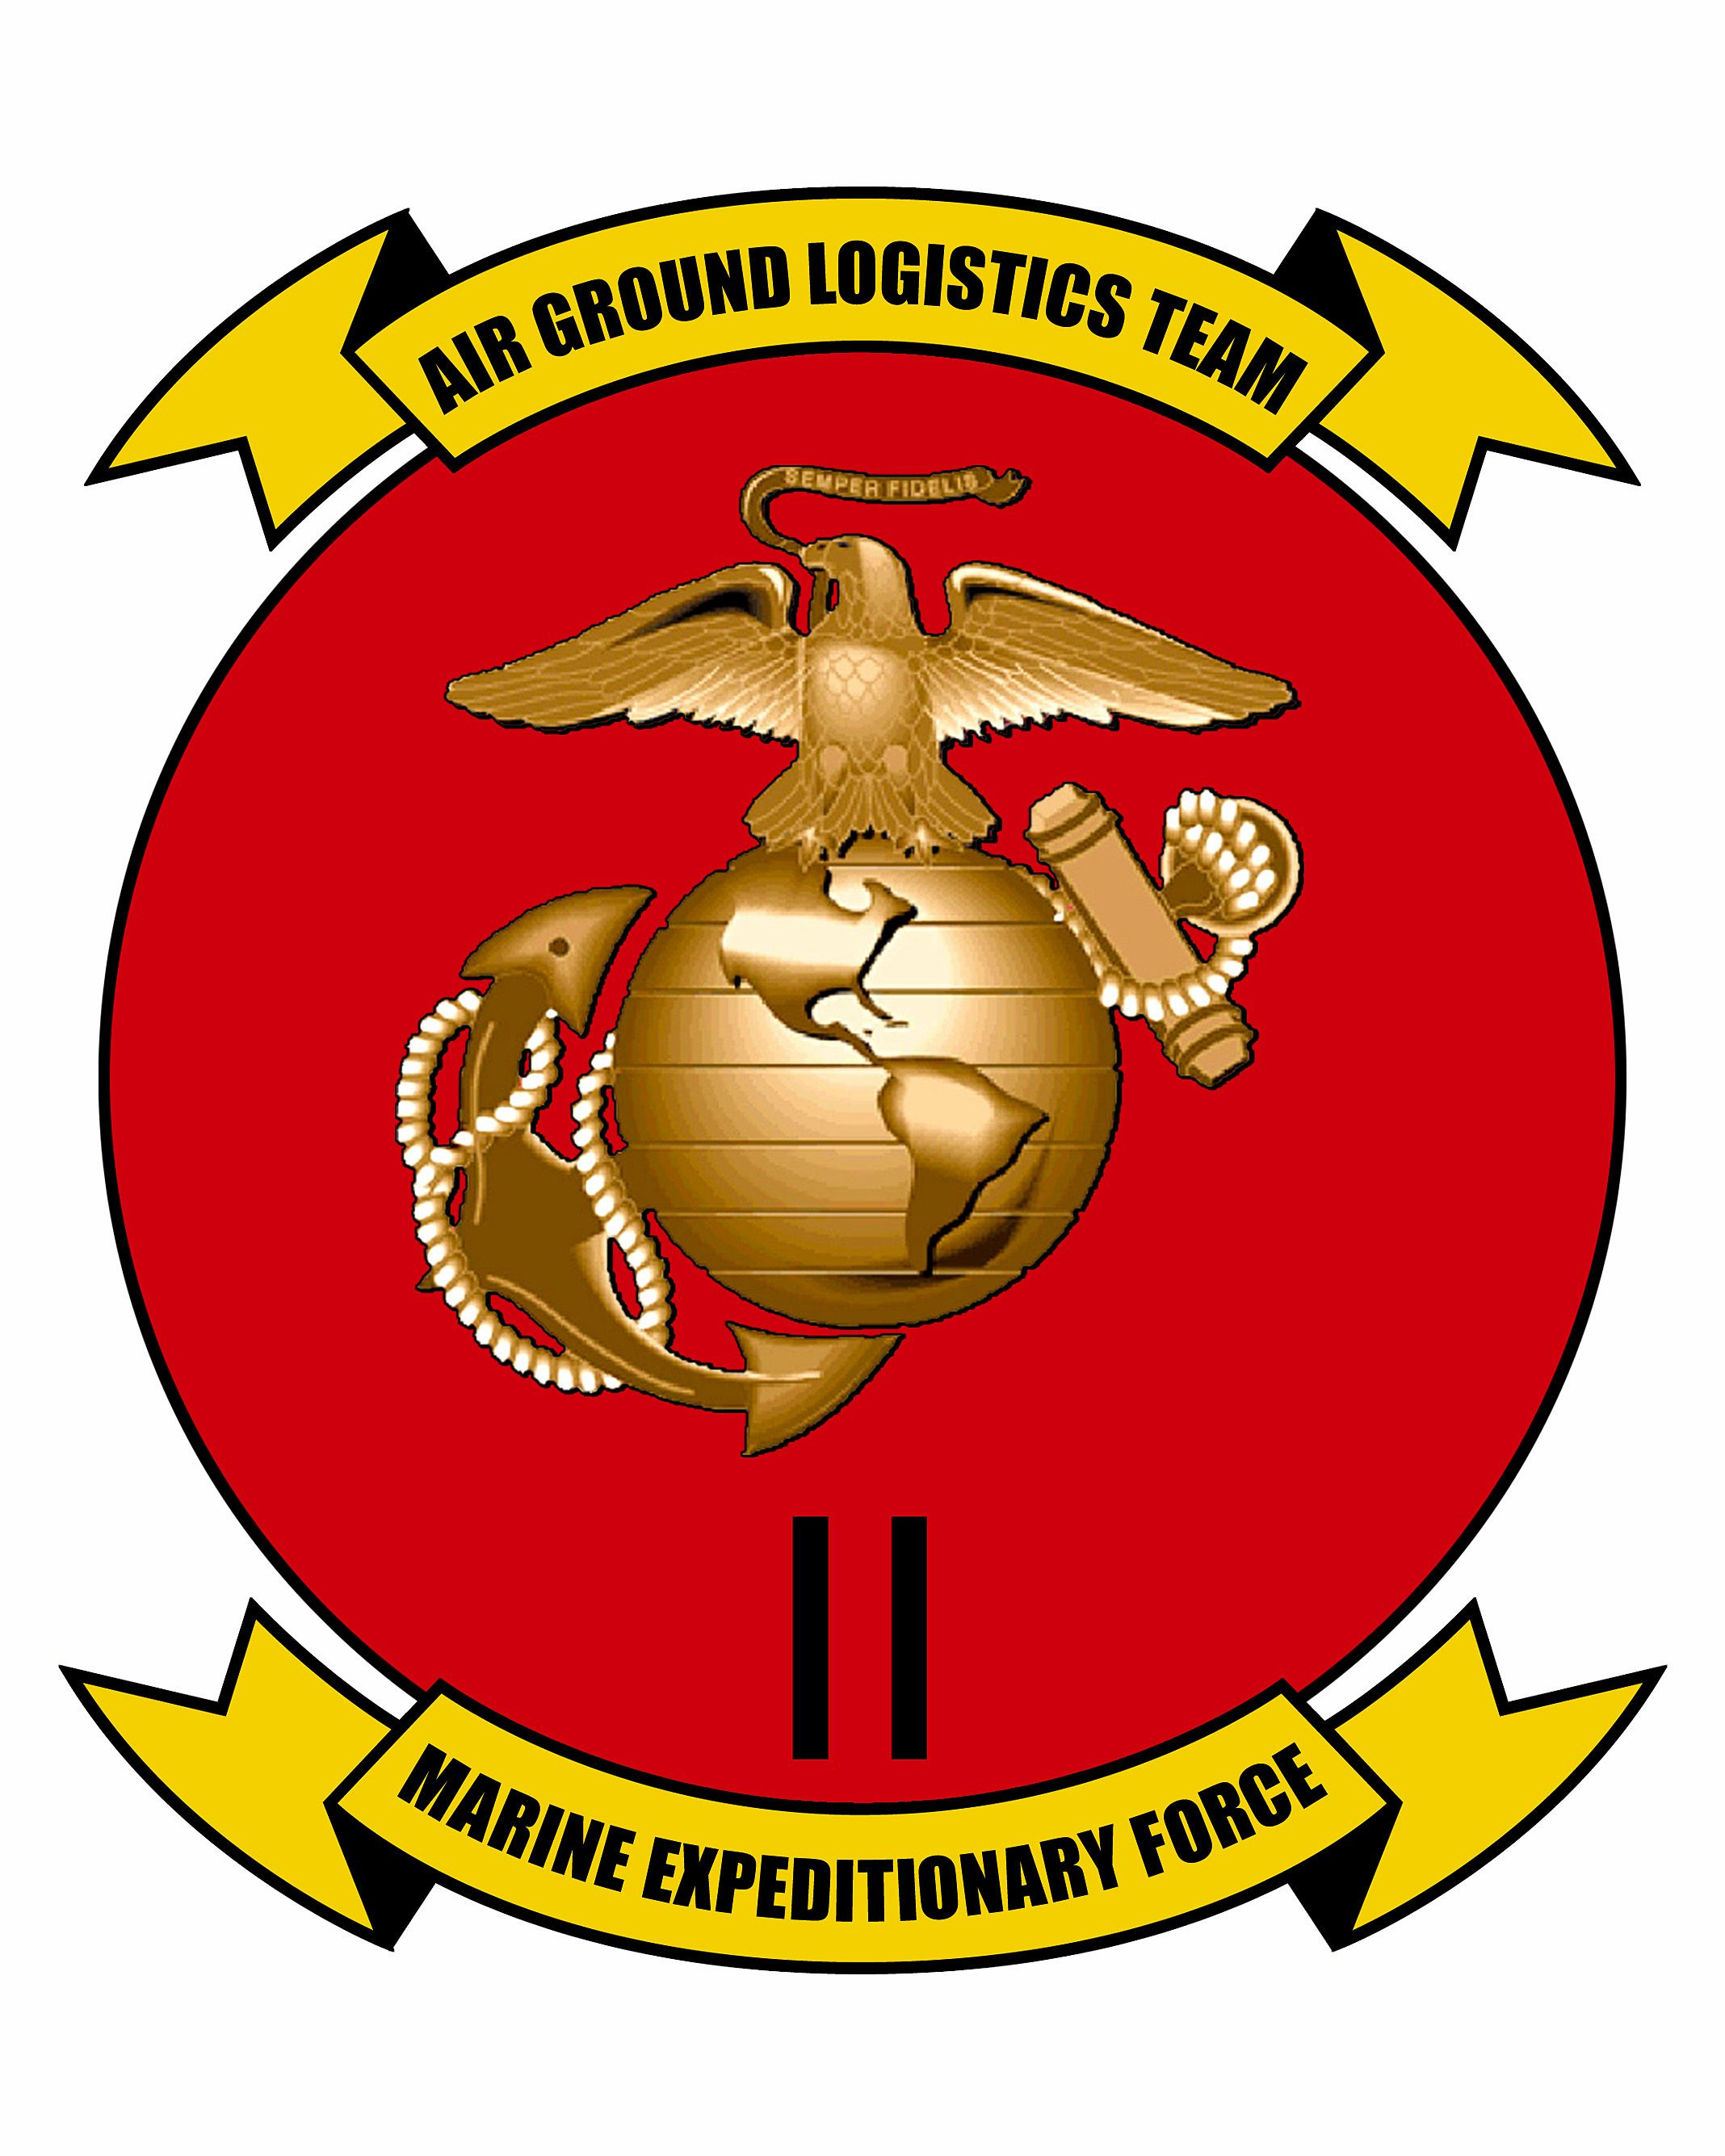 Offical logo ii marine expeditionary force camp lejeune nc offical logo ii marine expeditionary force camp lejeune nc biocorpaavc Images